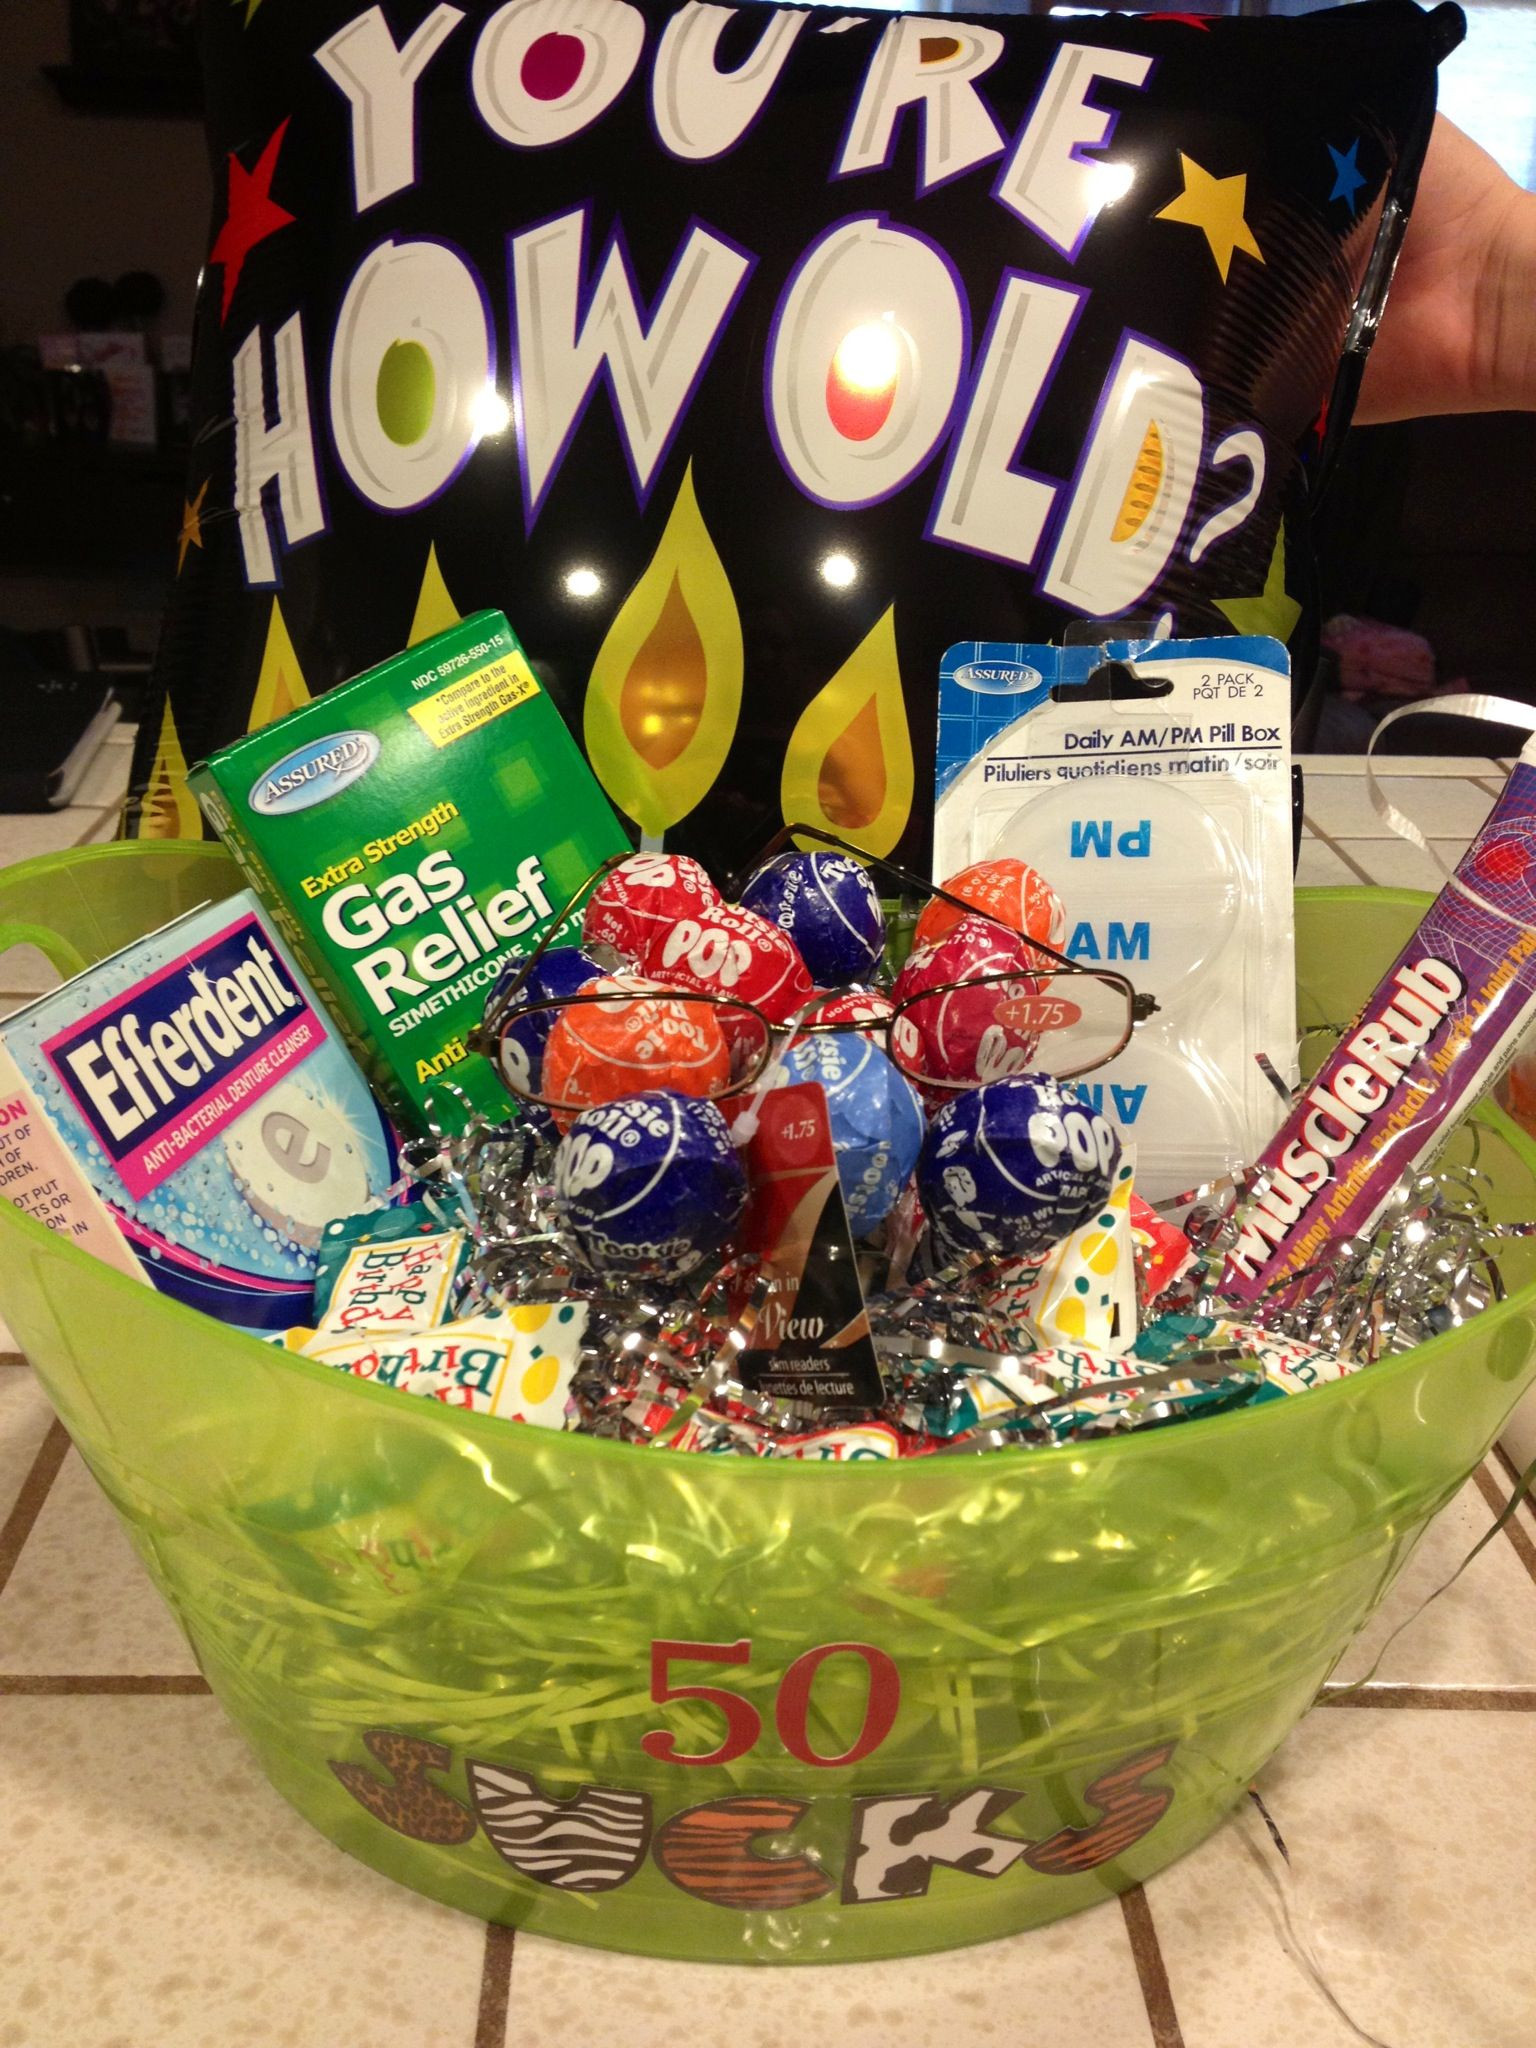 Best ideas about 50 Year Birthday Gifts . Save or Pin 50th Birthday Gift Ideas Now.